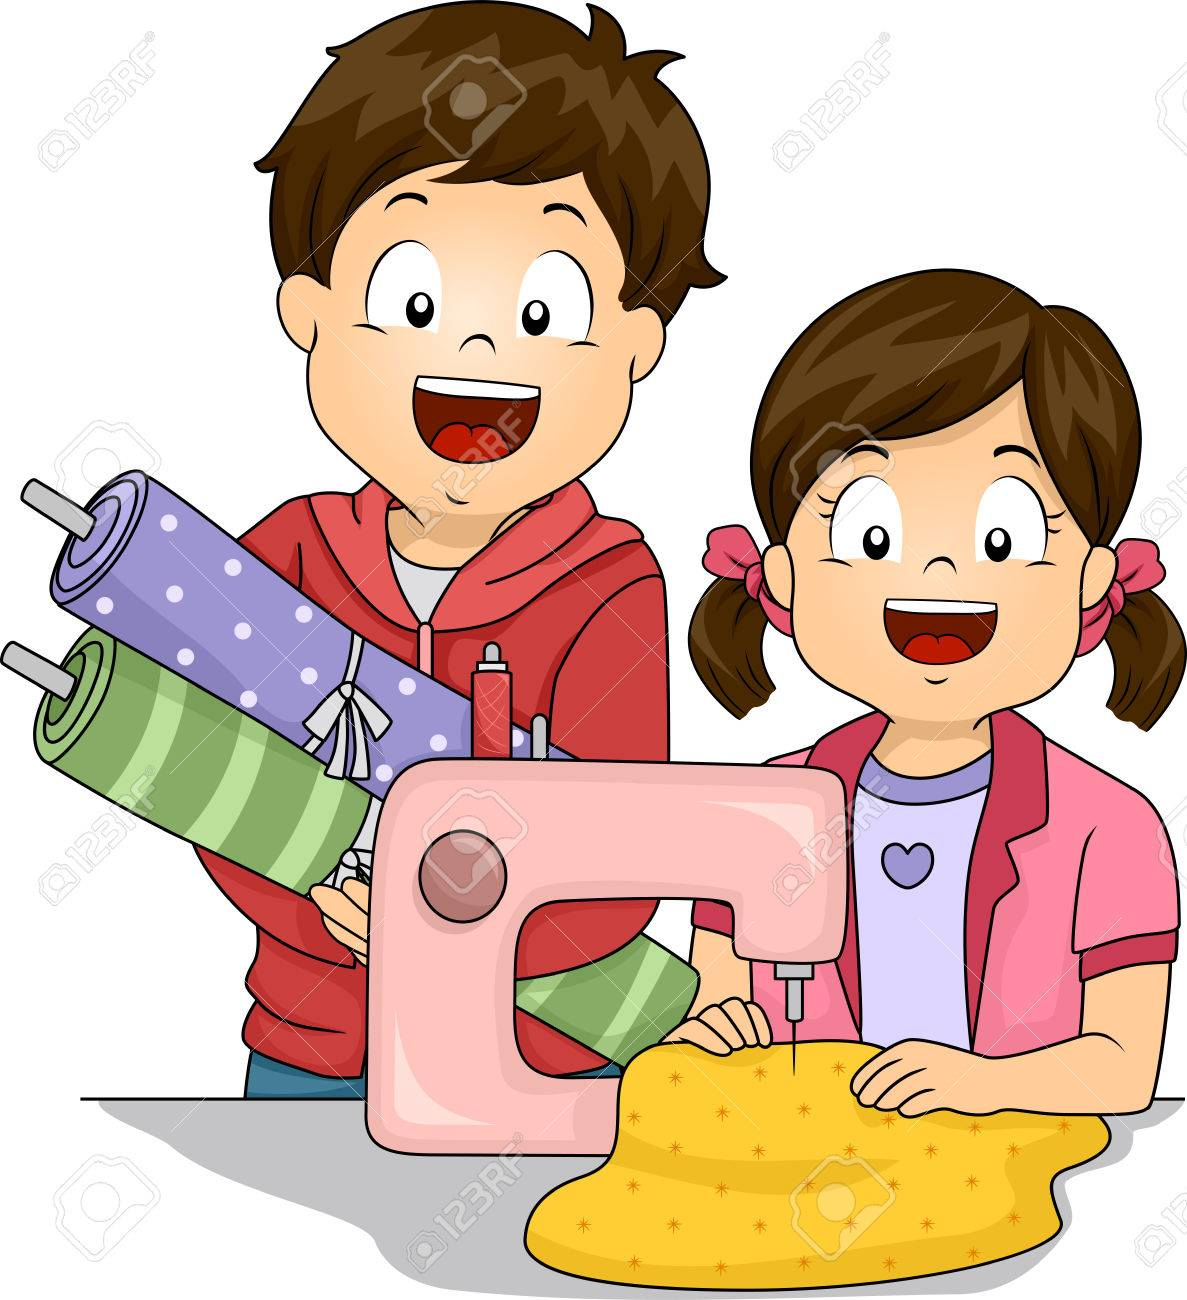 hight resolution of illustration featuring little kids learning how to sew stock vector 30333339